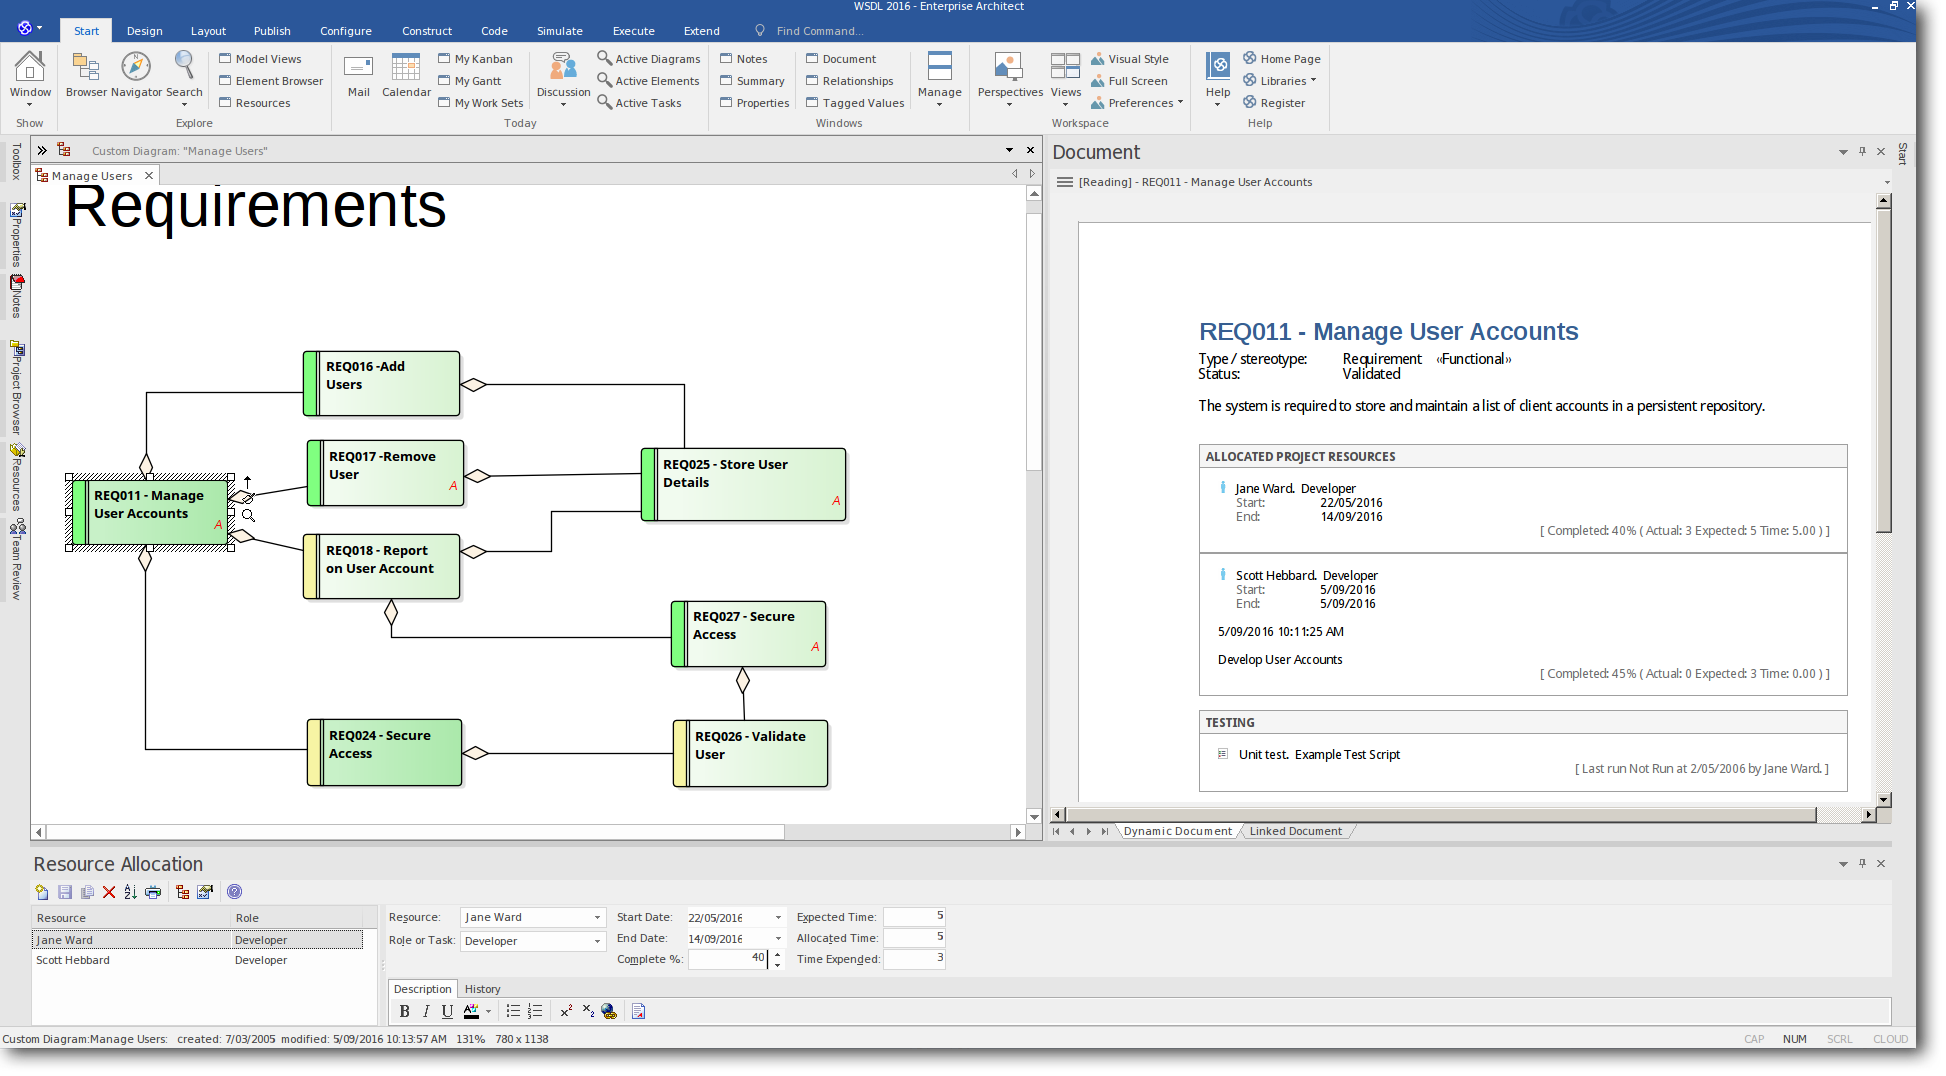 Enterprise Architect 13 Beta: Dynamic Documents